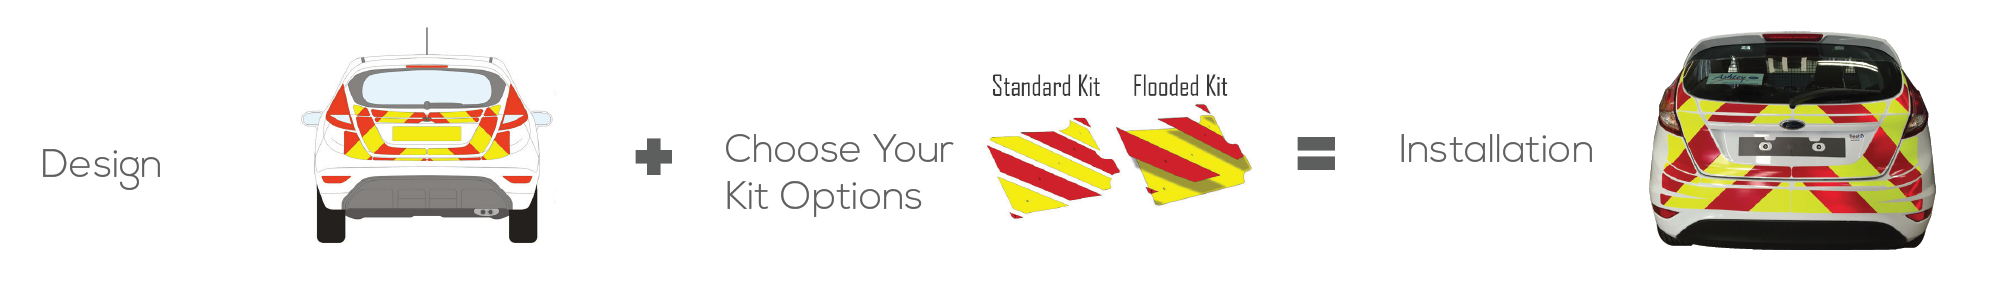 Fleet ID Chevron Kits